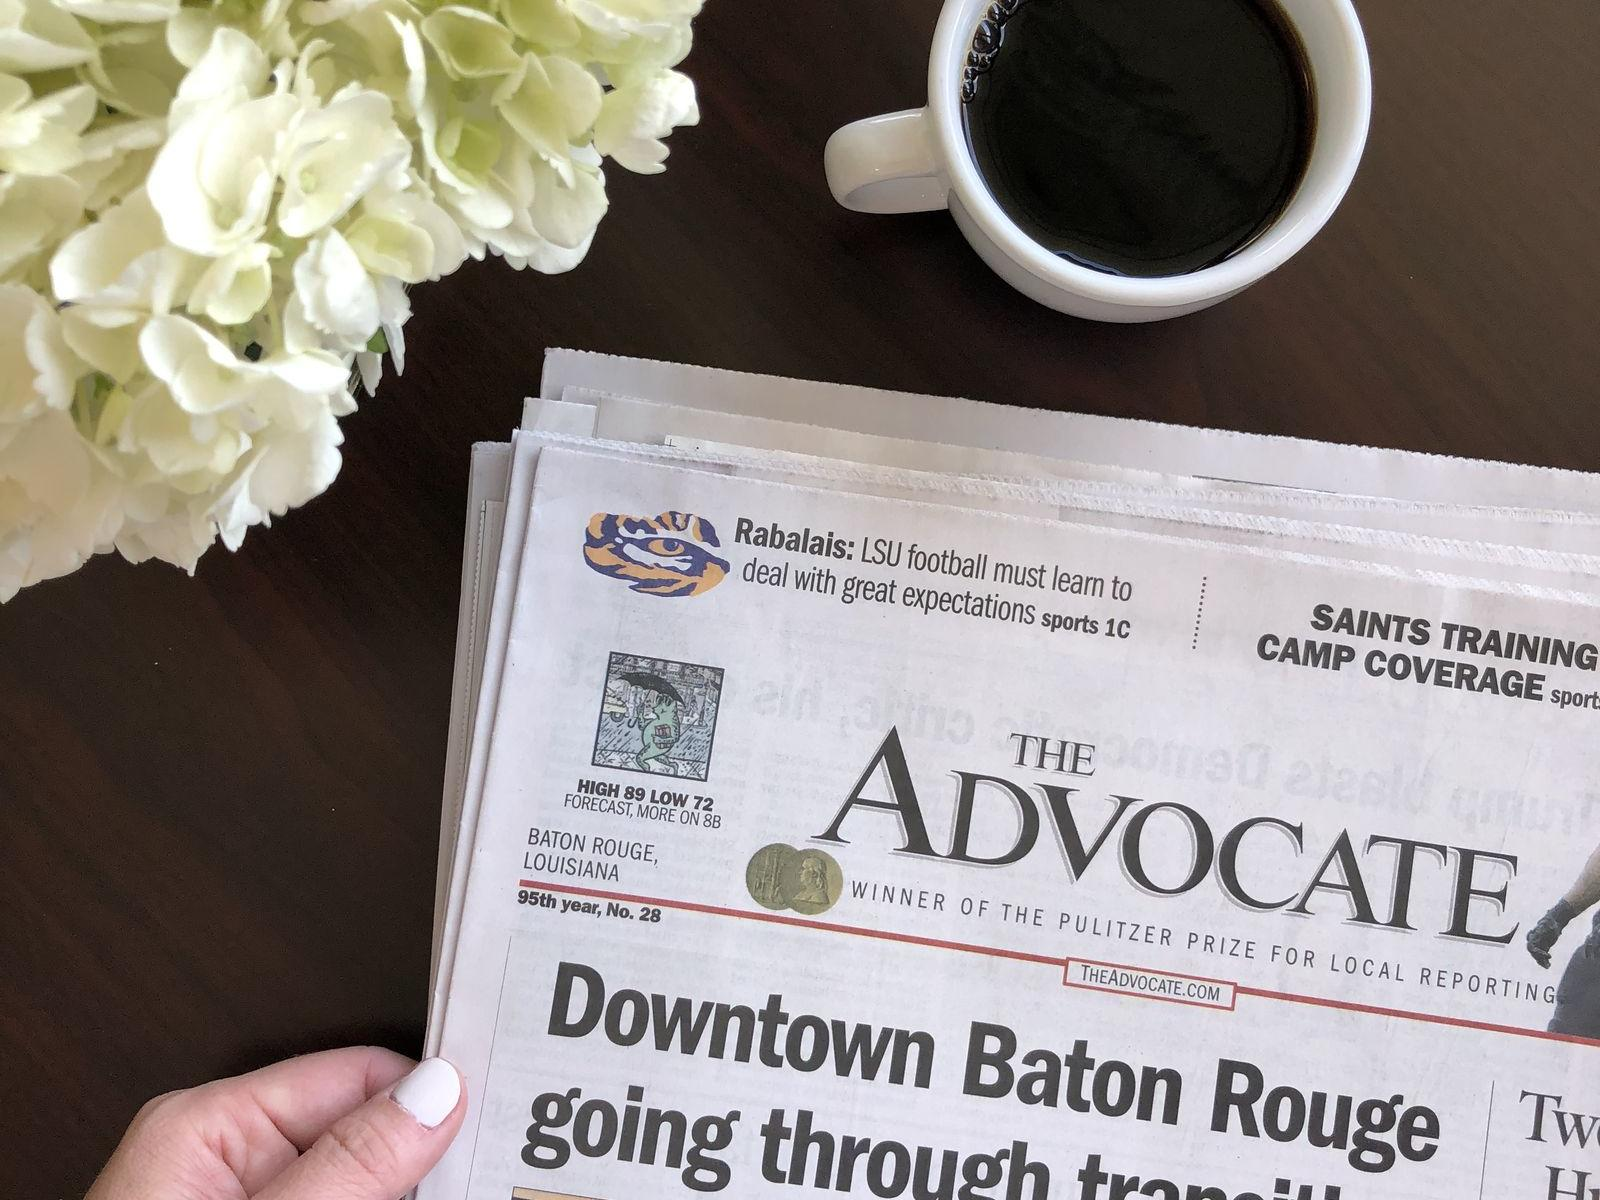 The Advocate newspaper and cup of coffee